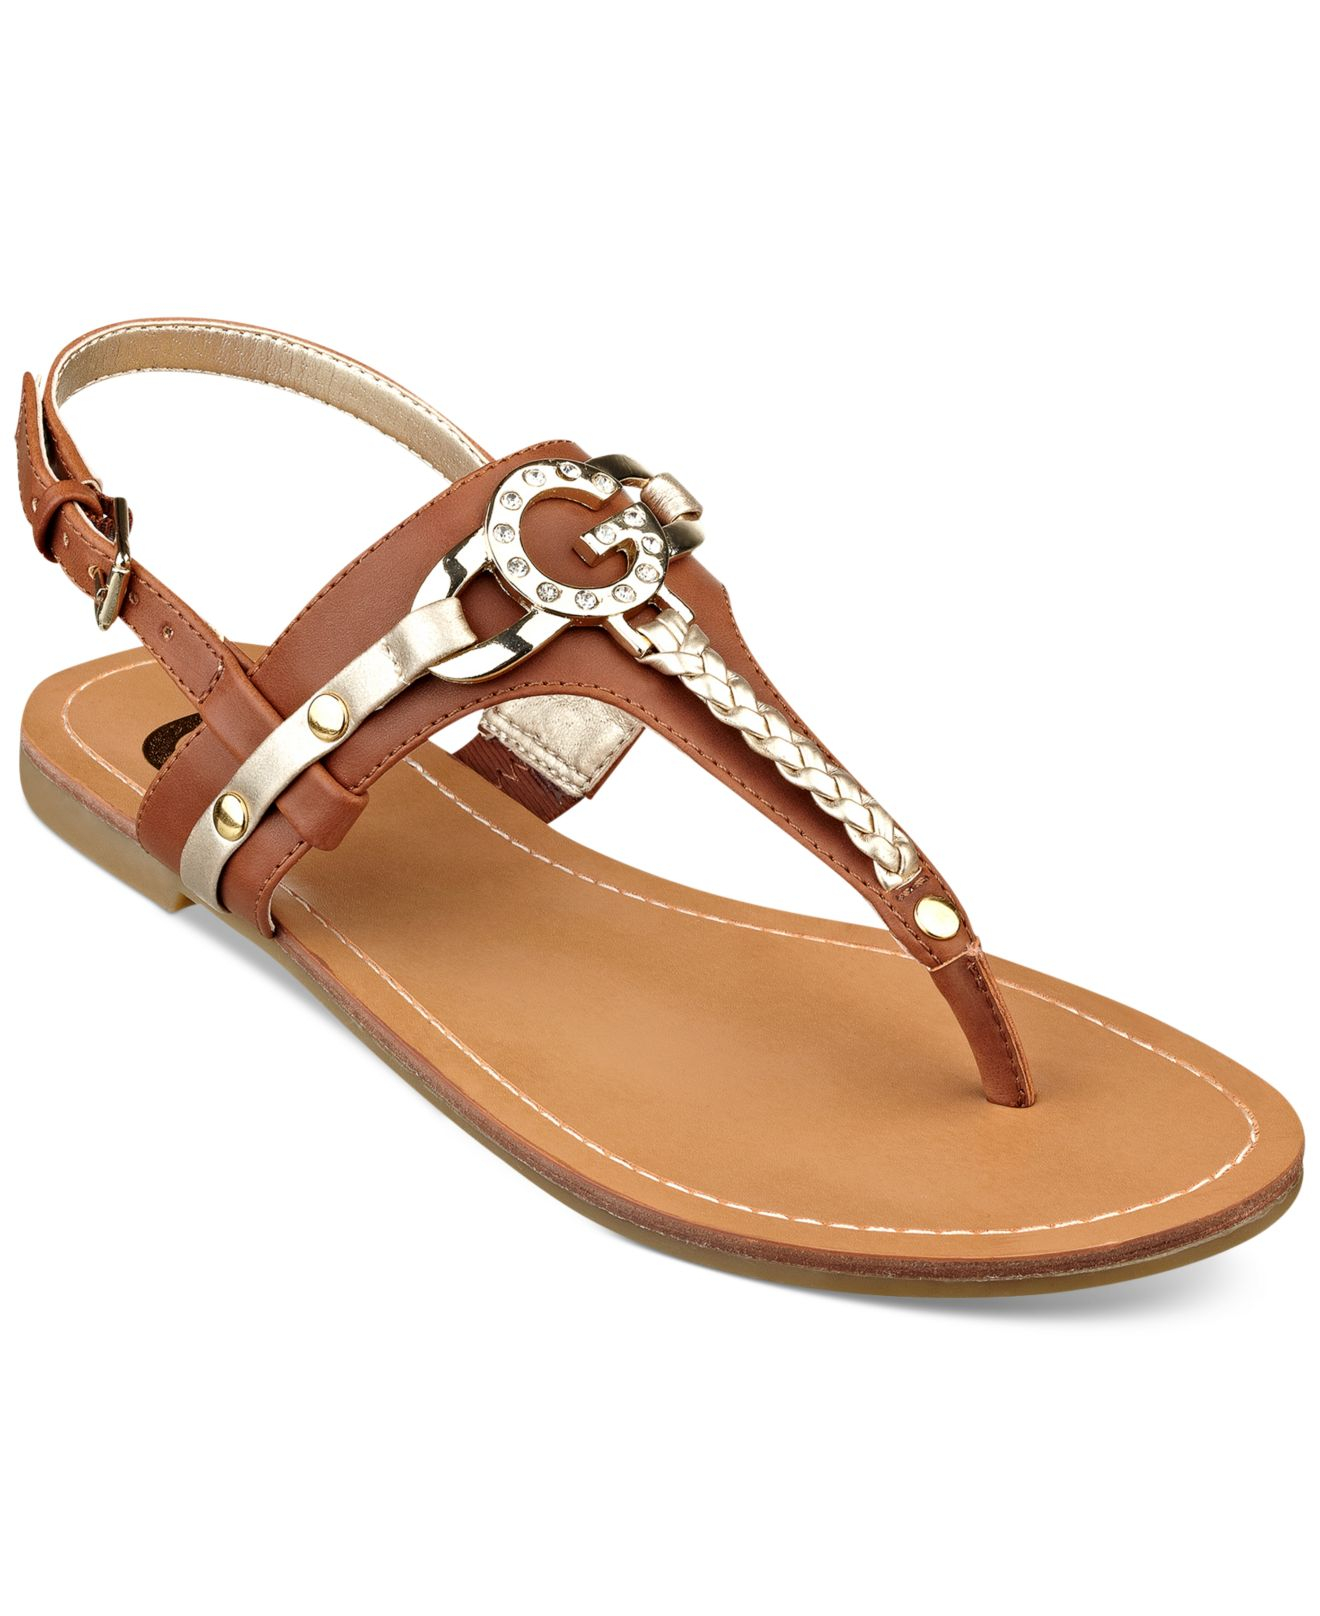 bffe88dba4c Lyst - G by Guess Women S Leed Flat Thong Sandals in Brown